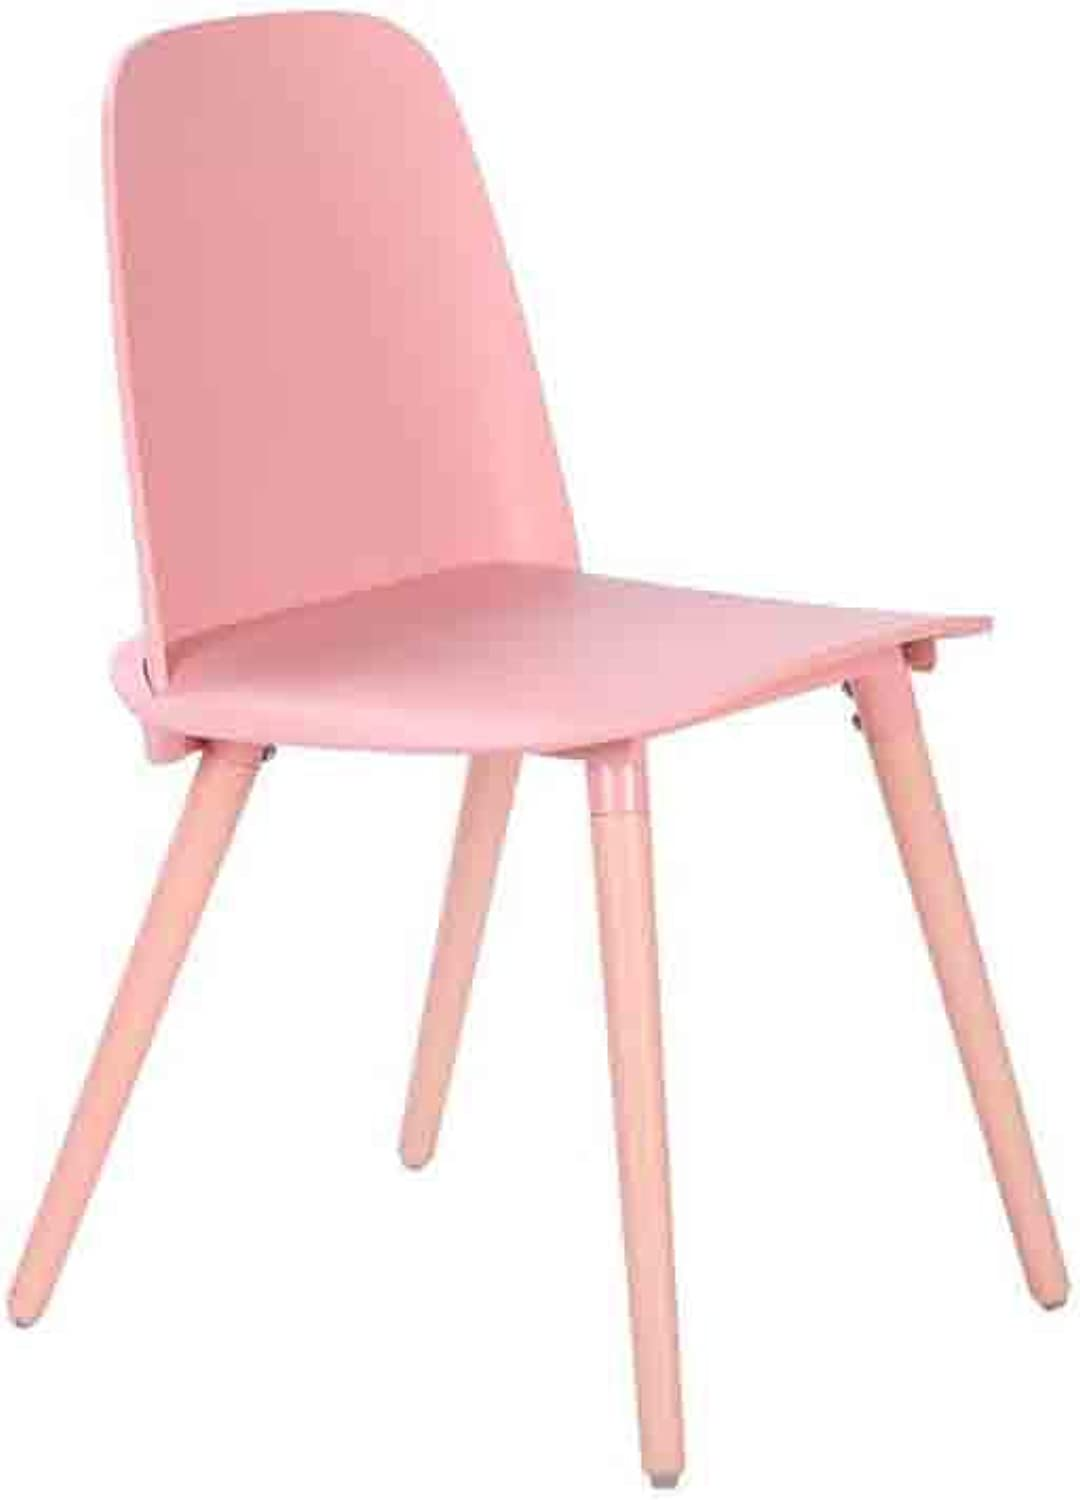 YCSD Inspired Chair Plastic Household Dining Cafe Chair Office Chair Lounge (color   Pink)